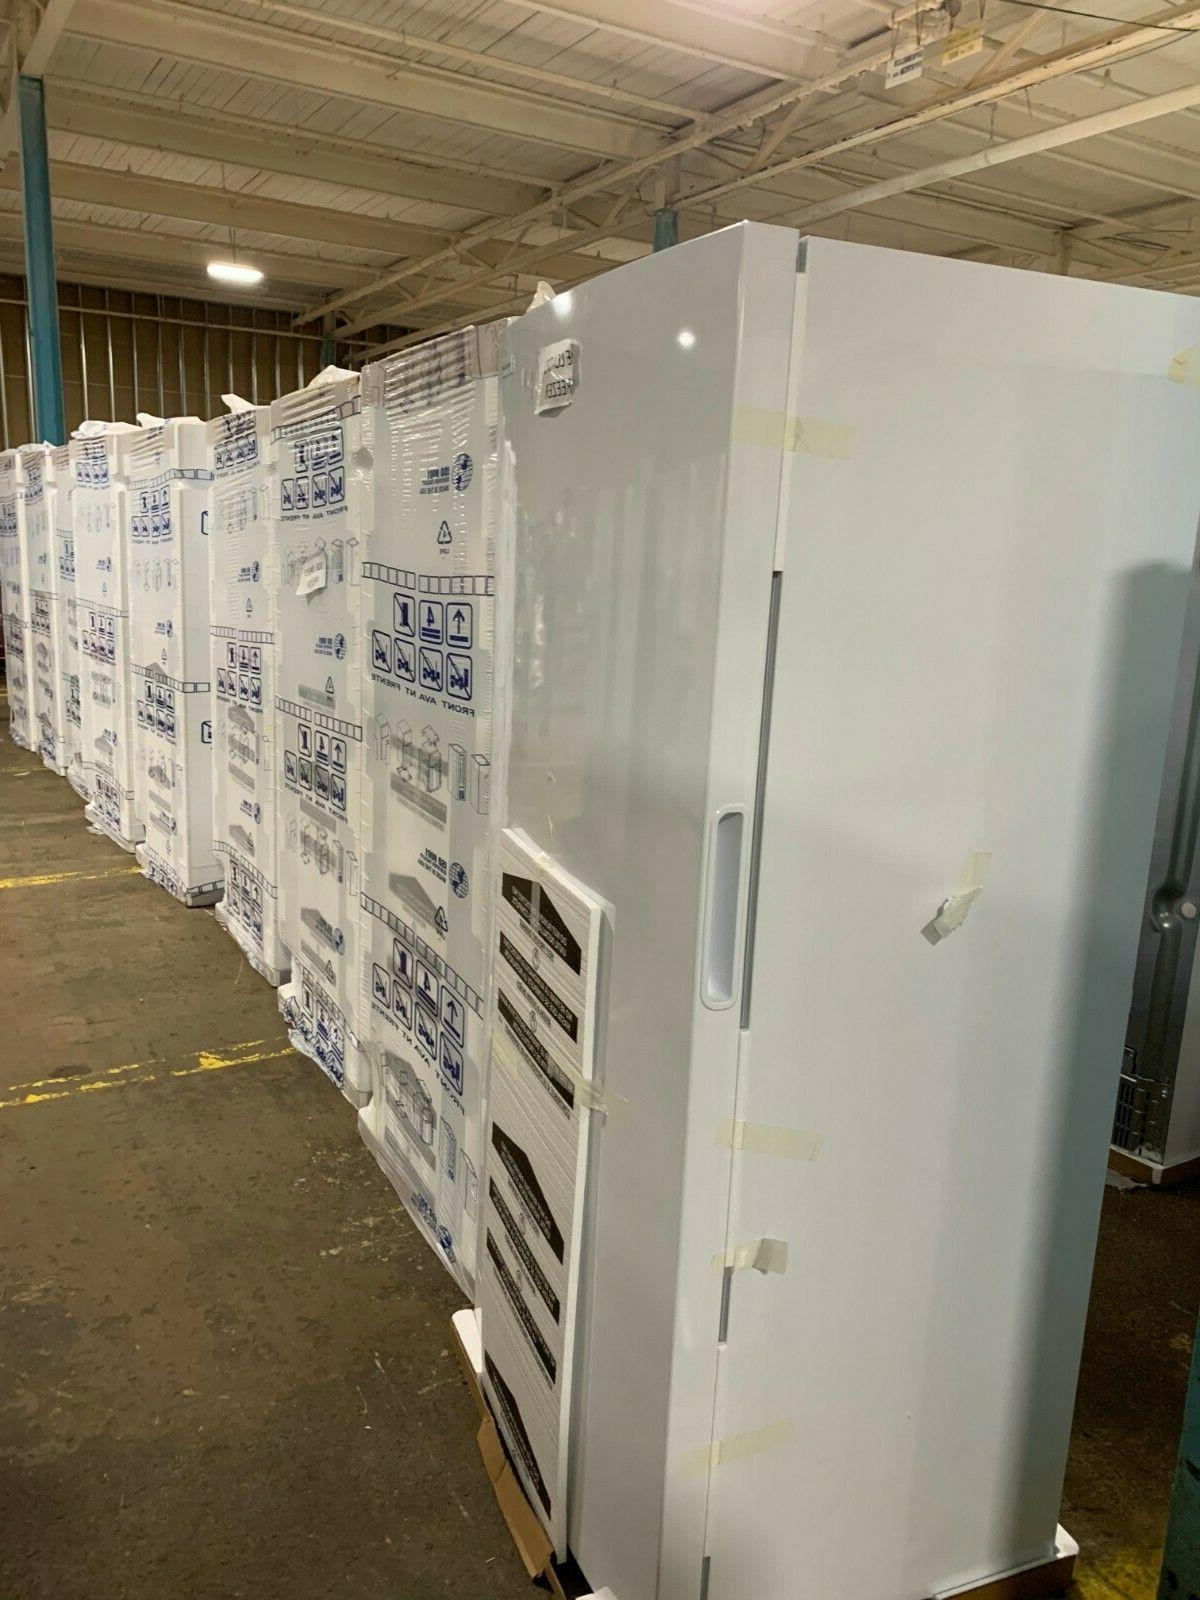 2020 frigidaier freezer brand new upright 20